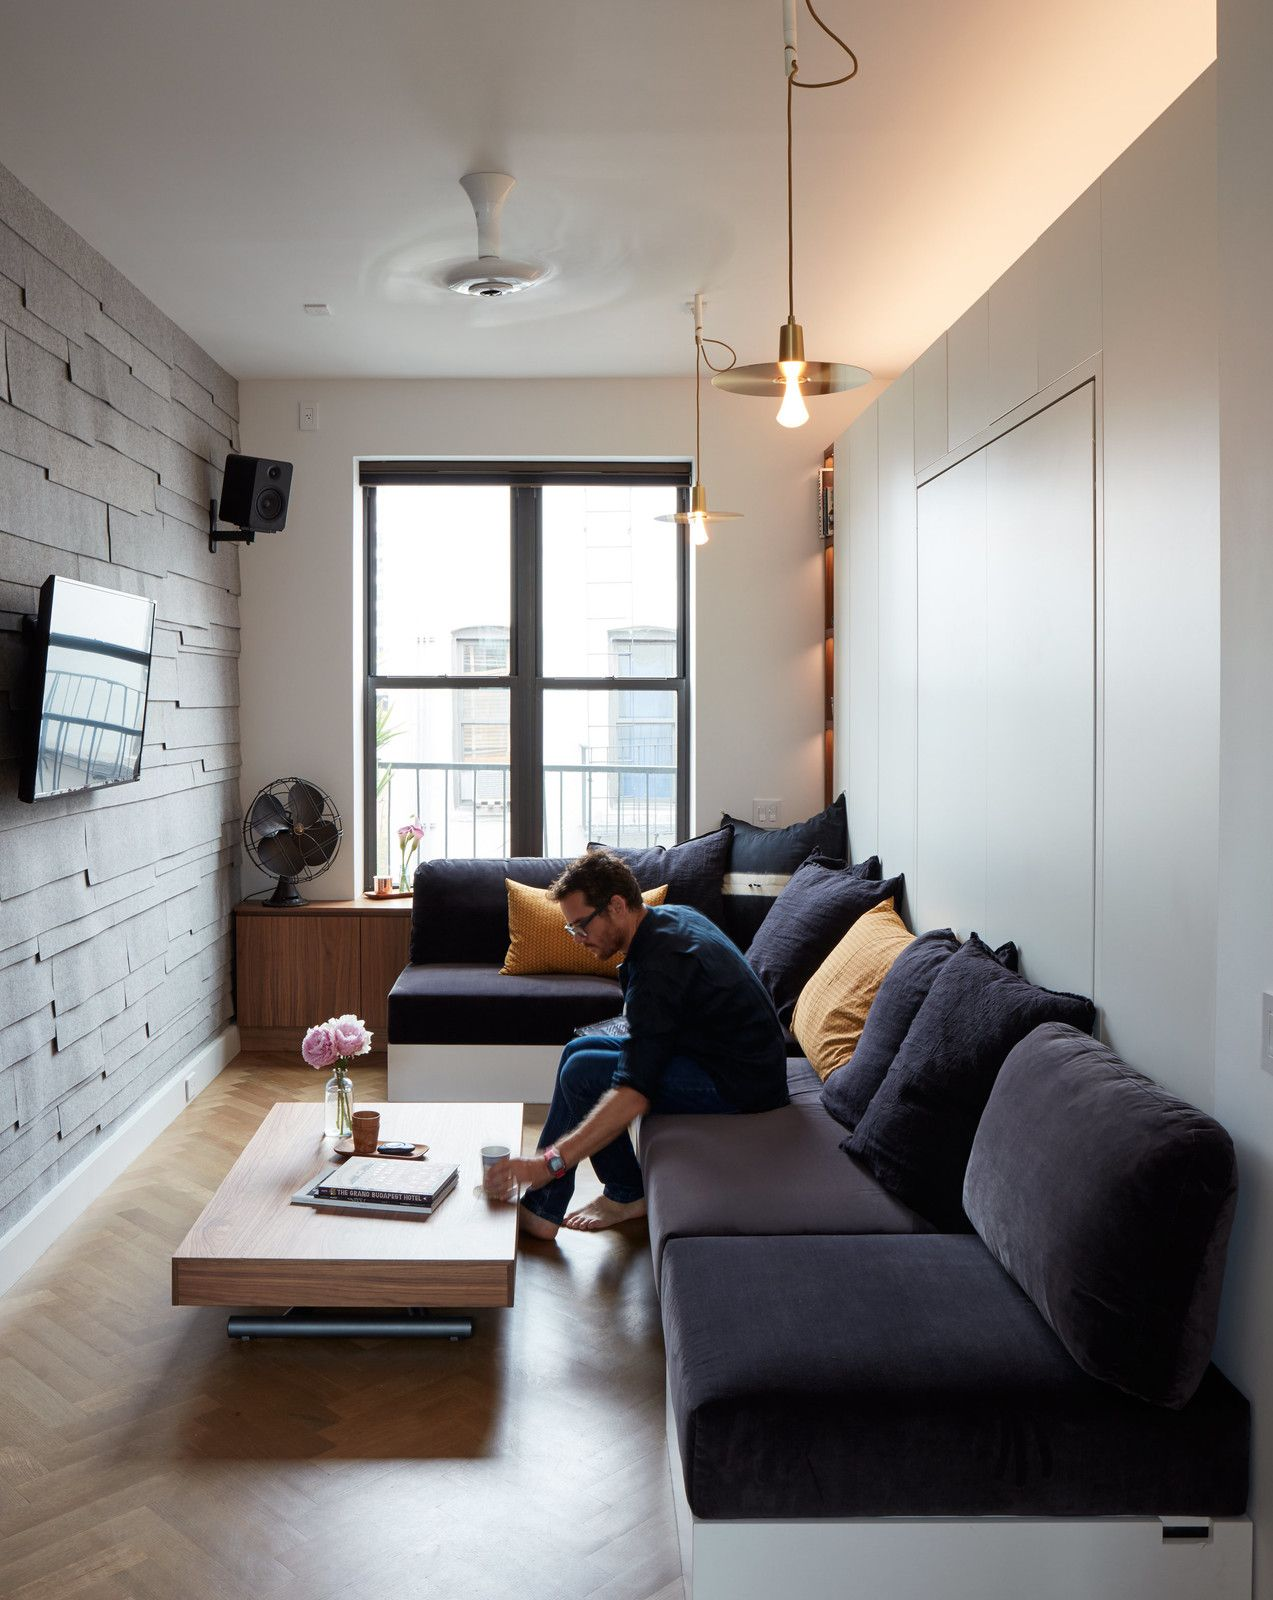 Small Living Room Ideas: Small Space Living In A SoHo Apartment